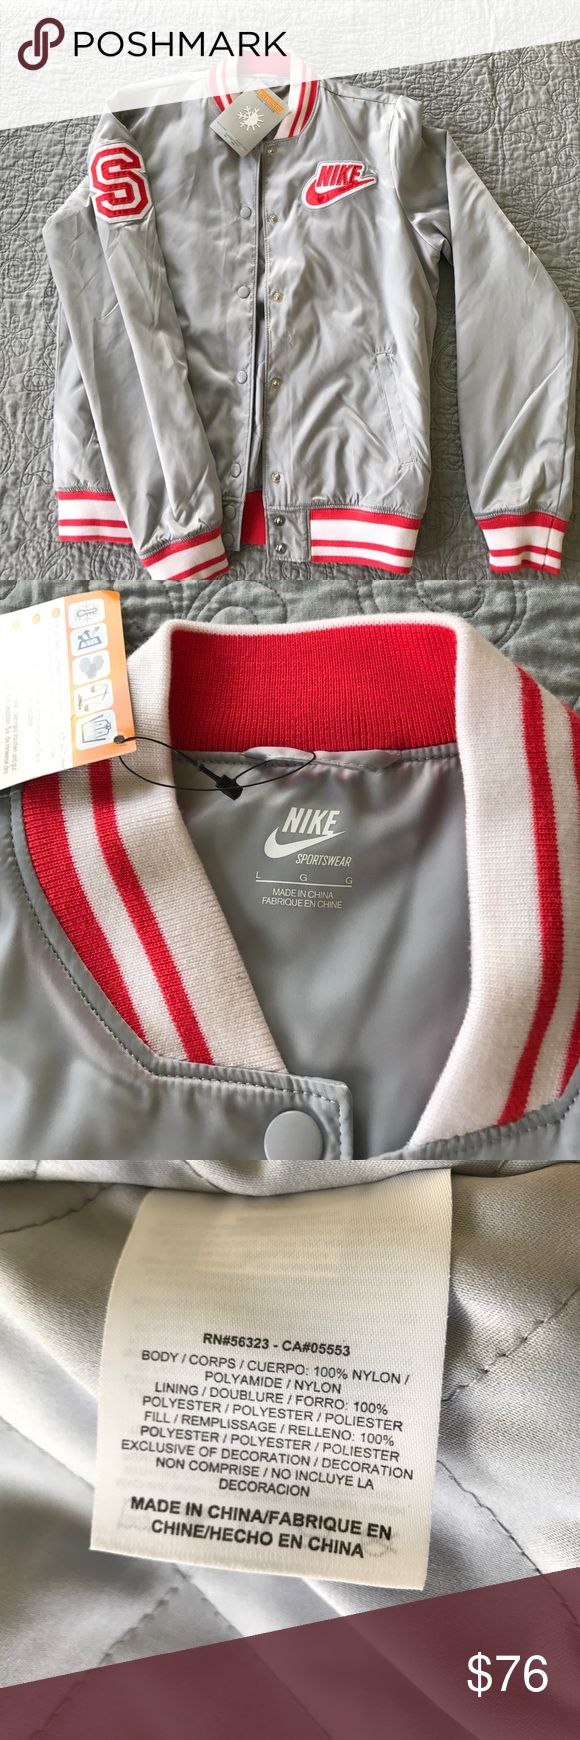 Nike varsity jacket NWT. Grey and Red. NWT! All reasonable offers considered 🌺 This is a brand new never worn retro varsity jacket. Thermore insulated and quilted lining, so can be worn in milder winter weather. Full snap, no zippers. Nike Jackets & Coats Bomber & Varsity